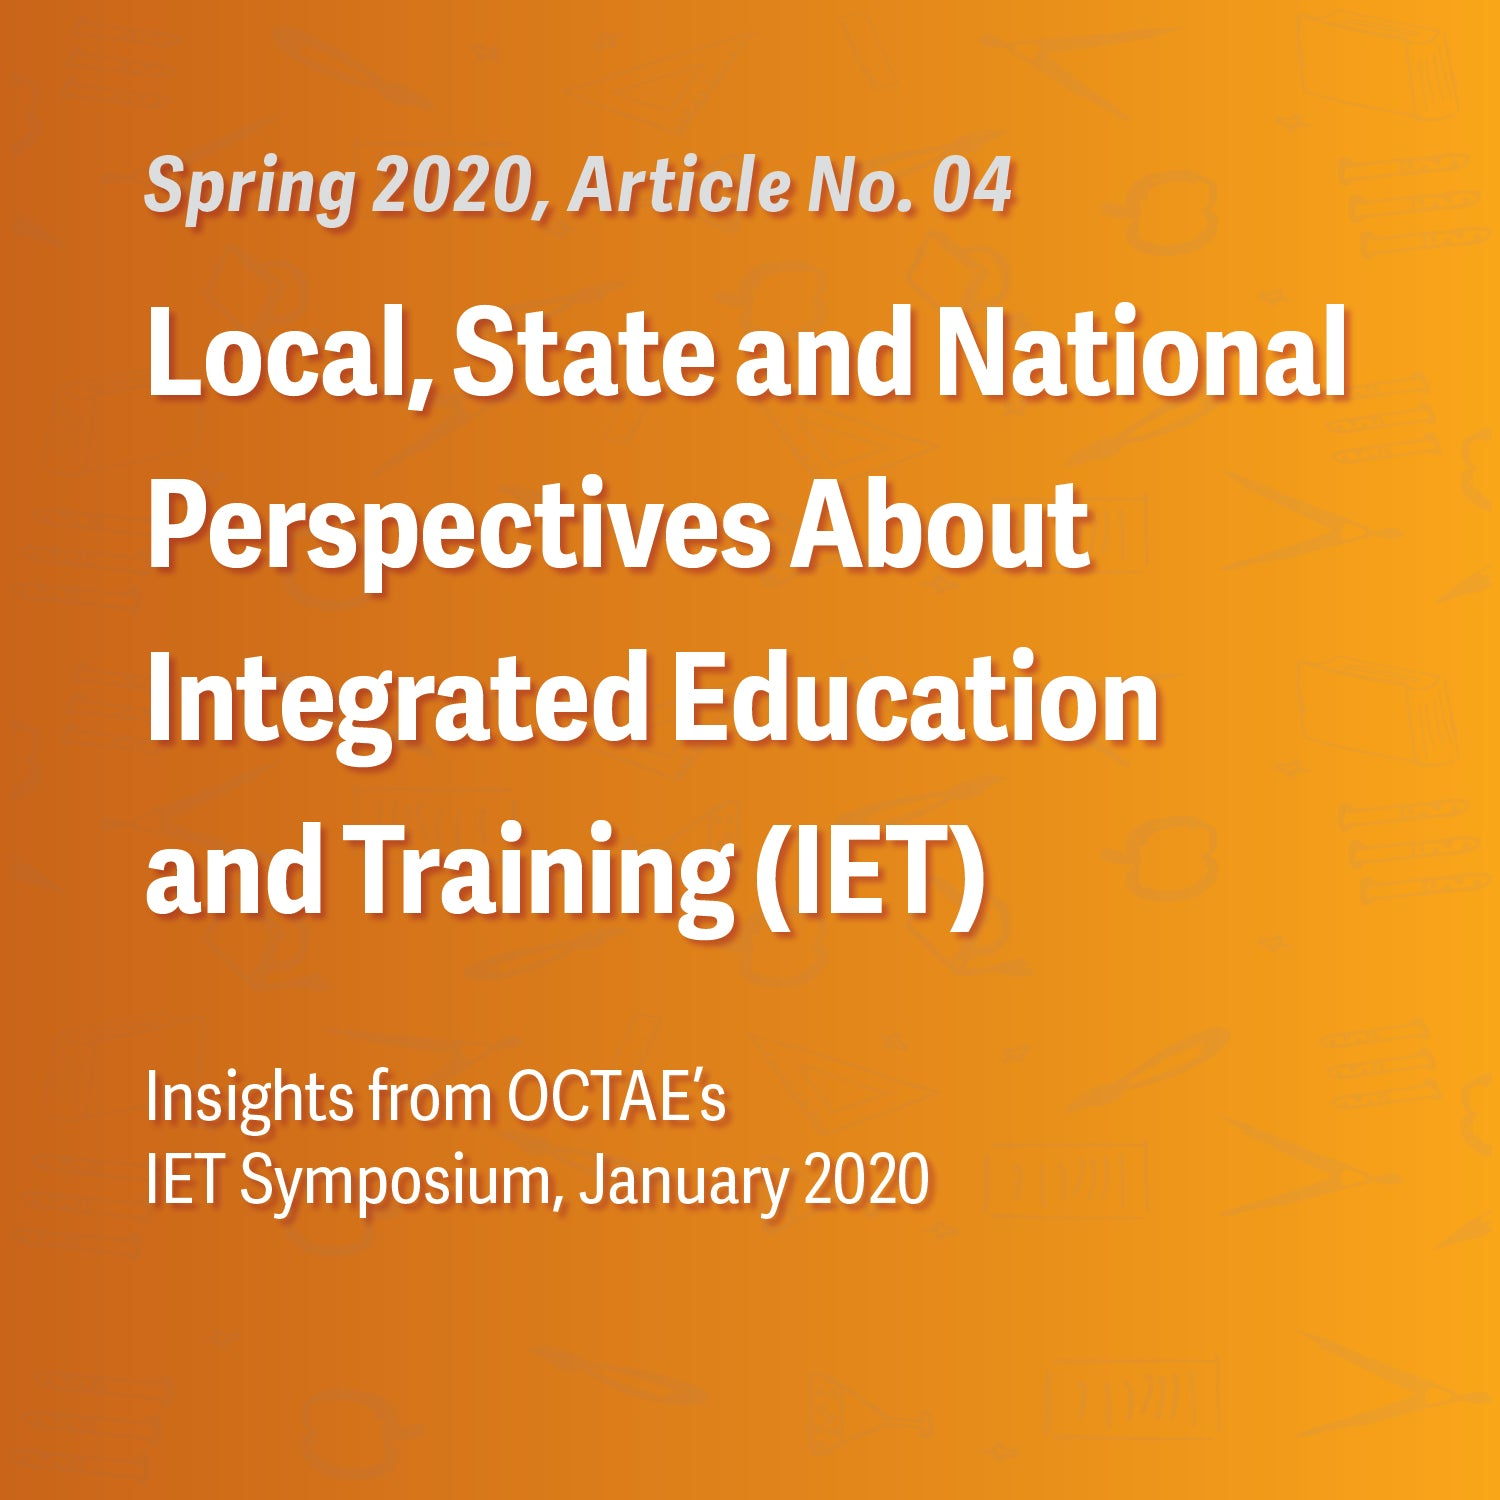 Local, State and National Perspectives About Integrated Education and Training (IET): Insights from OCTAE's IET Symposium, January 2020